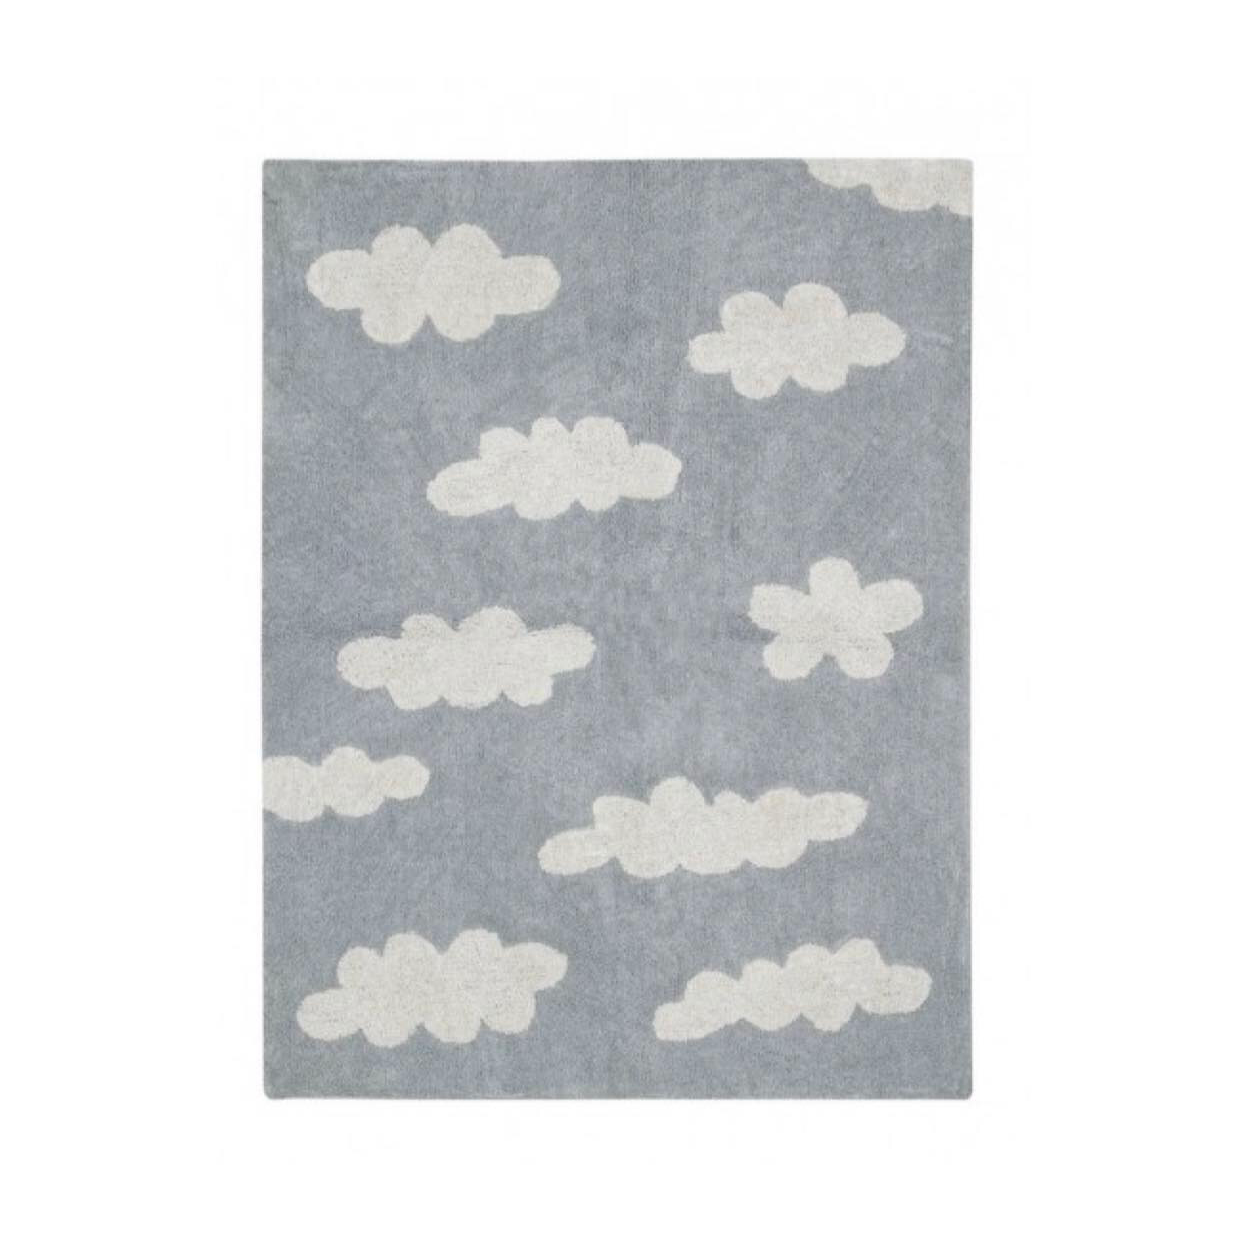 Lorena Canals Clouds Rug - Grey